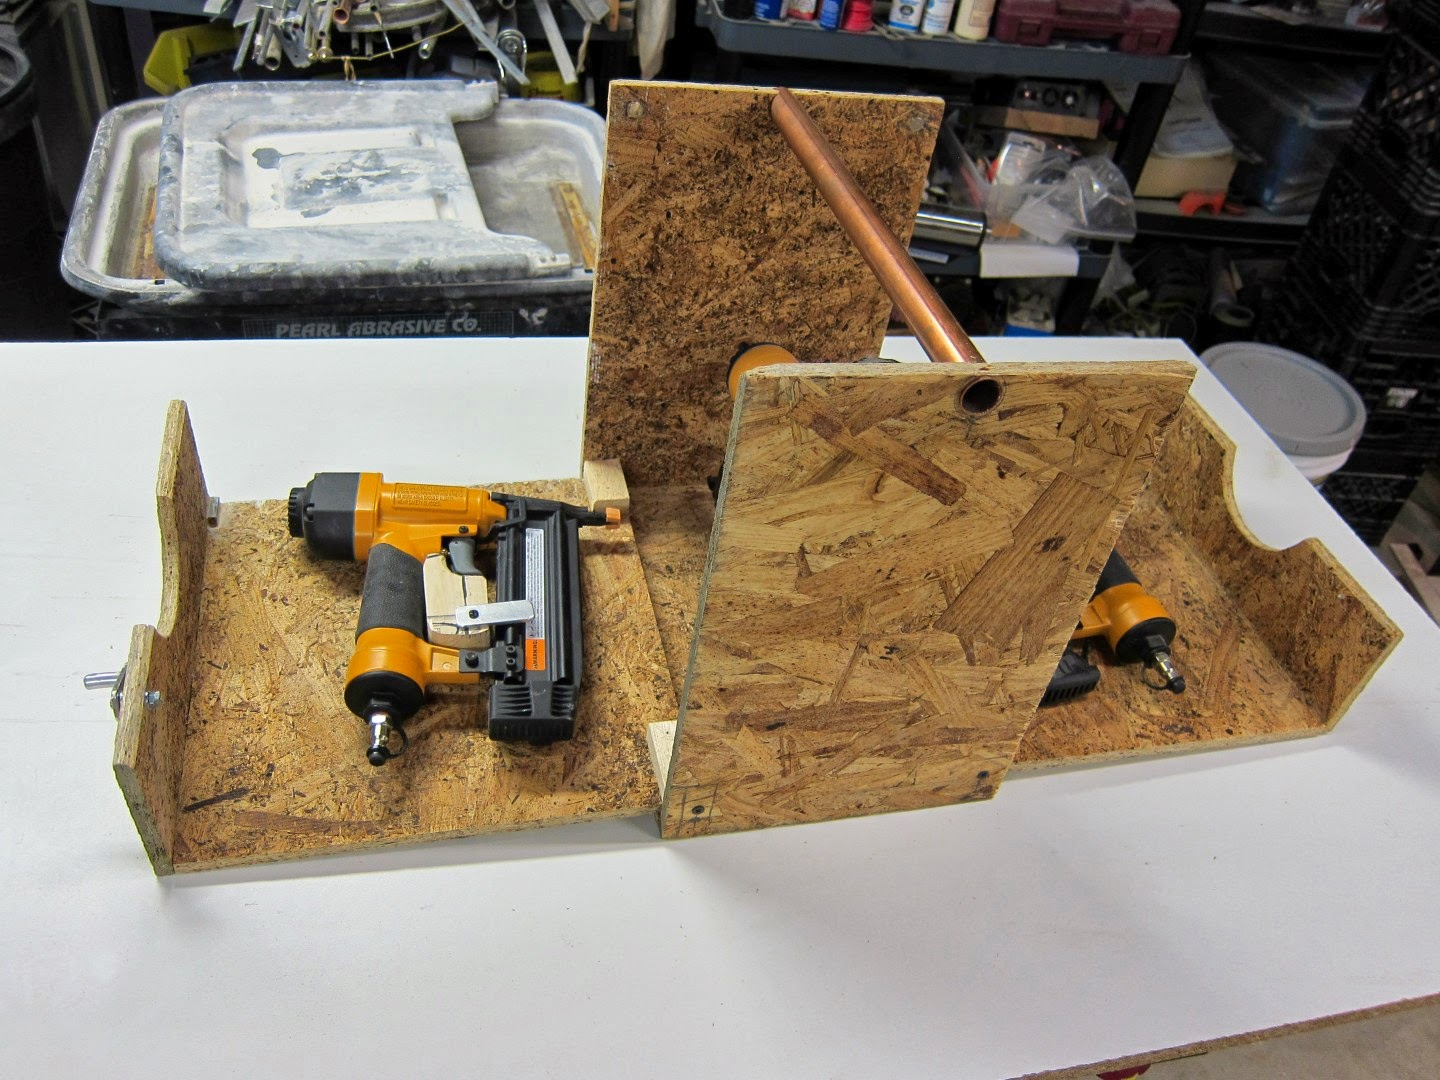 fold out tool case, nail gun